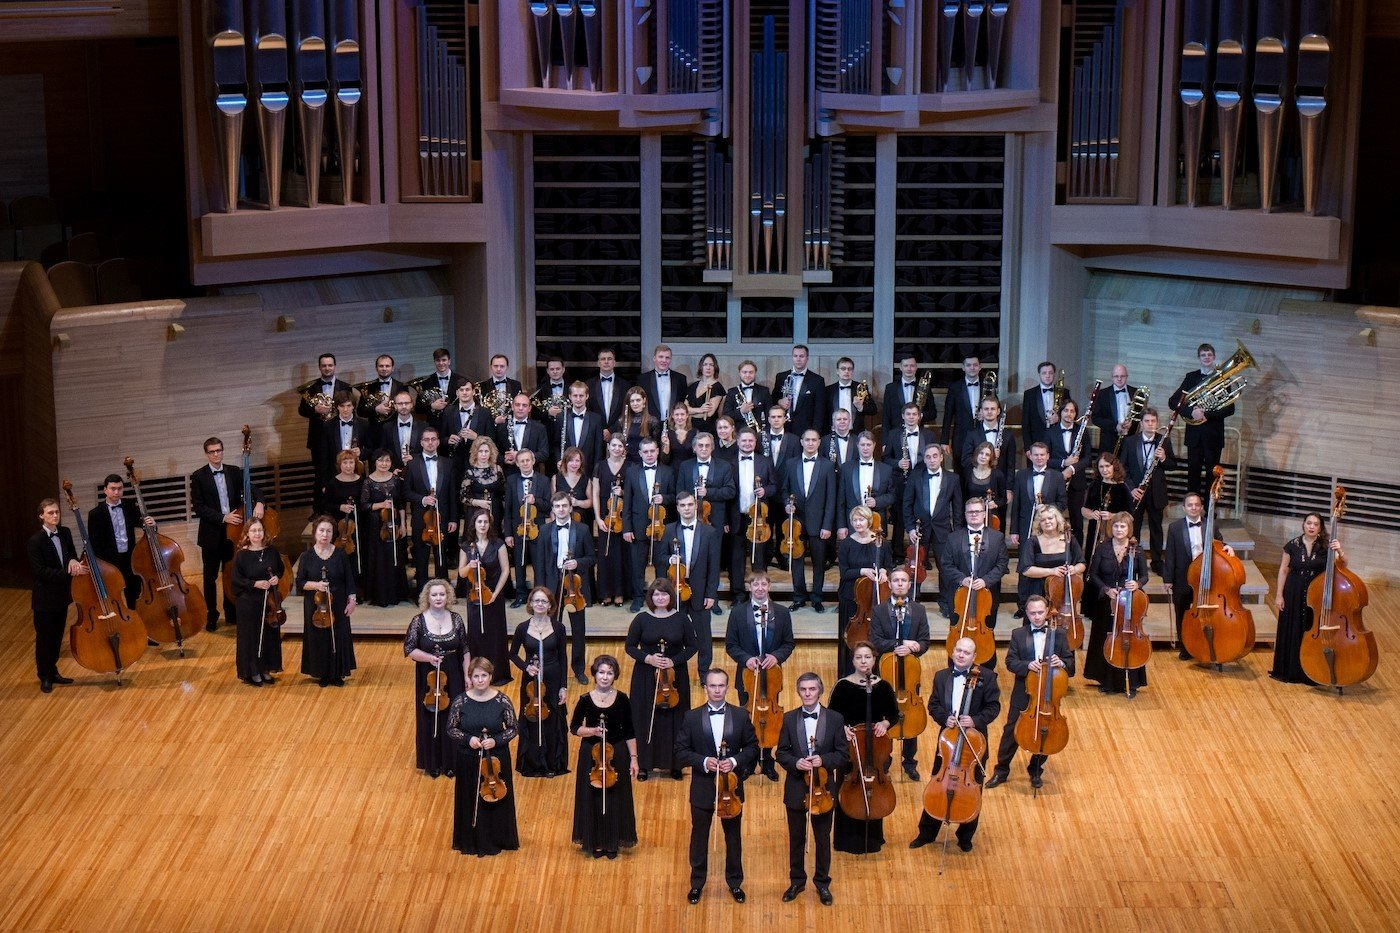 The Russian State Symphony Orchestra will perform Feb. 8 at Lewis Auditorium as part of the EMMA Concert Series.